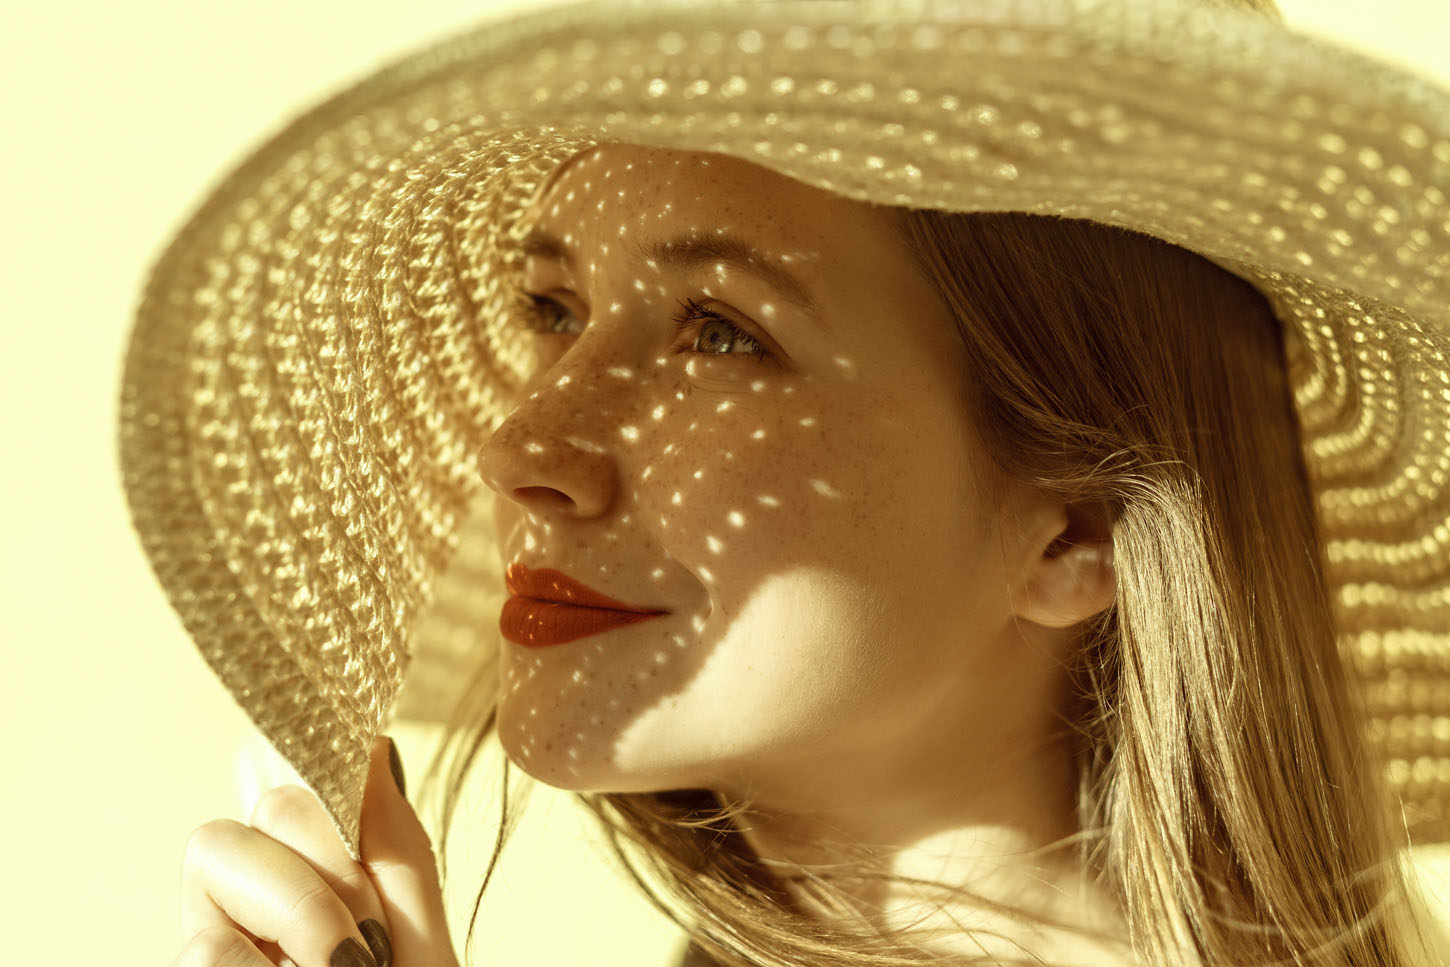 Lady in straw hat in summer. Closeup, portrait of a beautiful and happy freckled woman. Indoor, studio shot. Yellow background